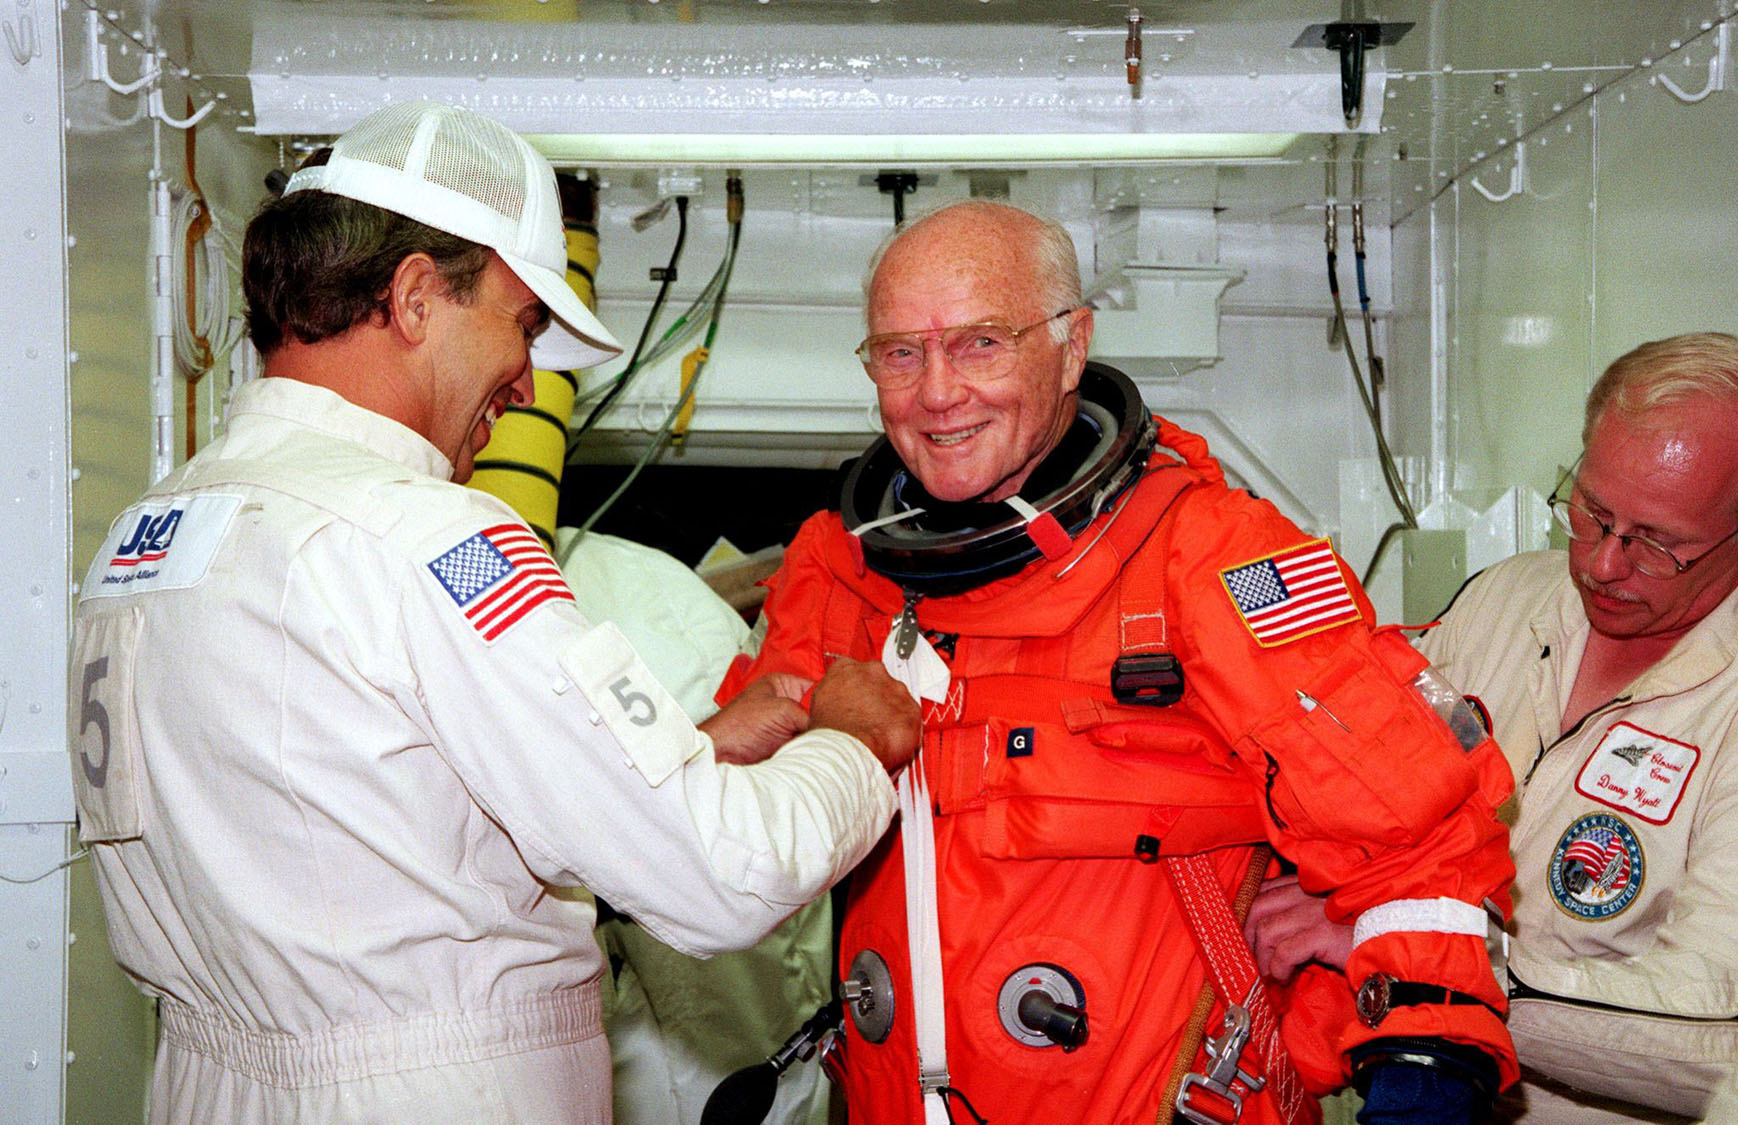 John Glenn, astronaut and former U.S. Senator, dies at 95